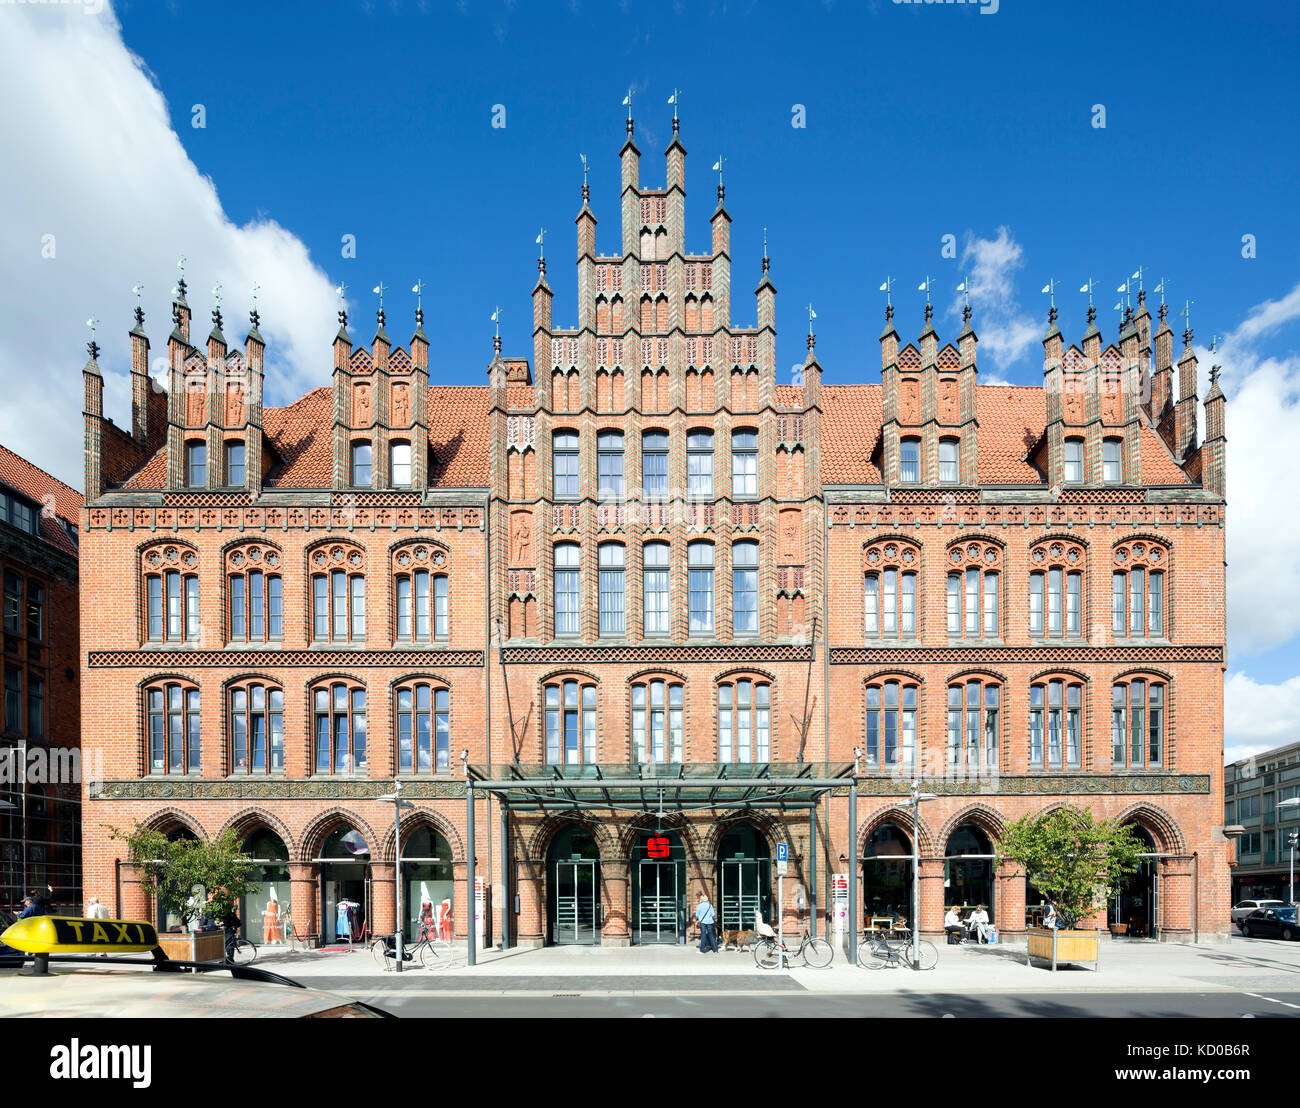 Old town hall, north German brick Gothic, Hanover, Lower Saxony, Germany - Stock Image